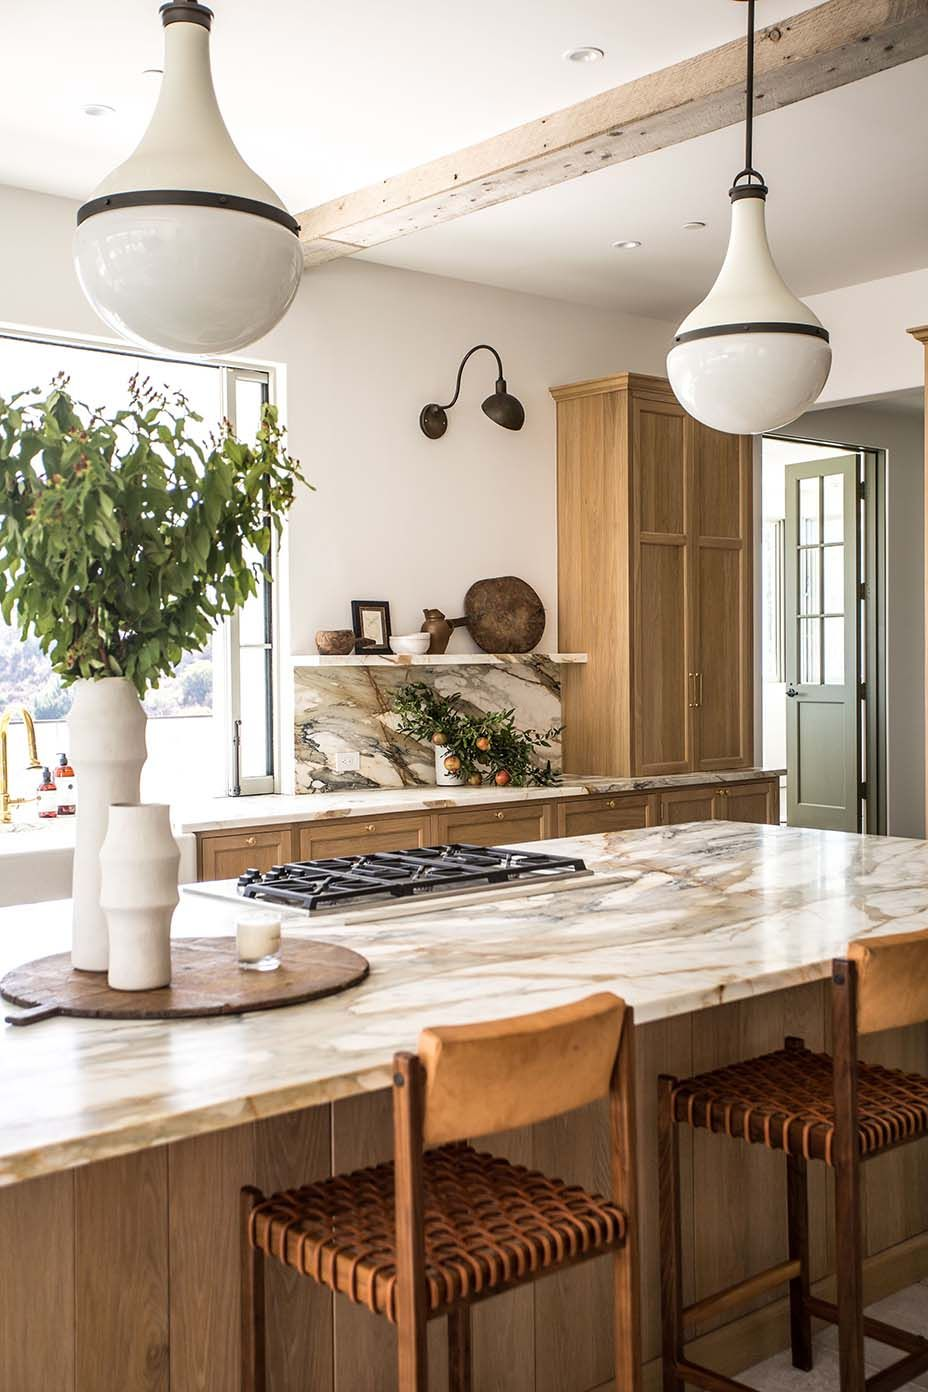 Top 20 Interior Designers In Los Angeles In 2020 Home Kitchens Kitchen Interior Kitchen Design